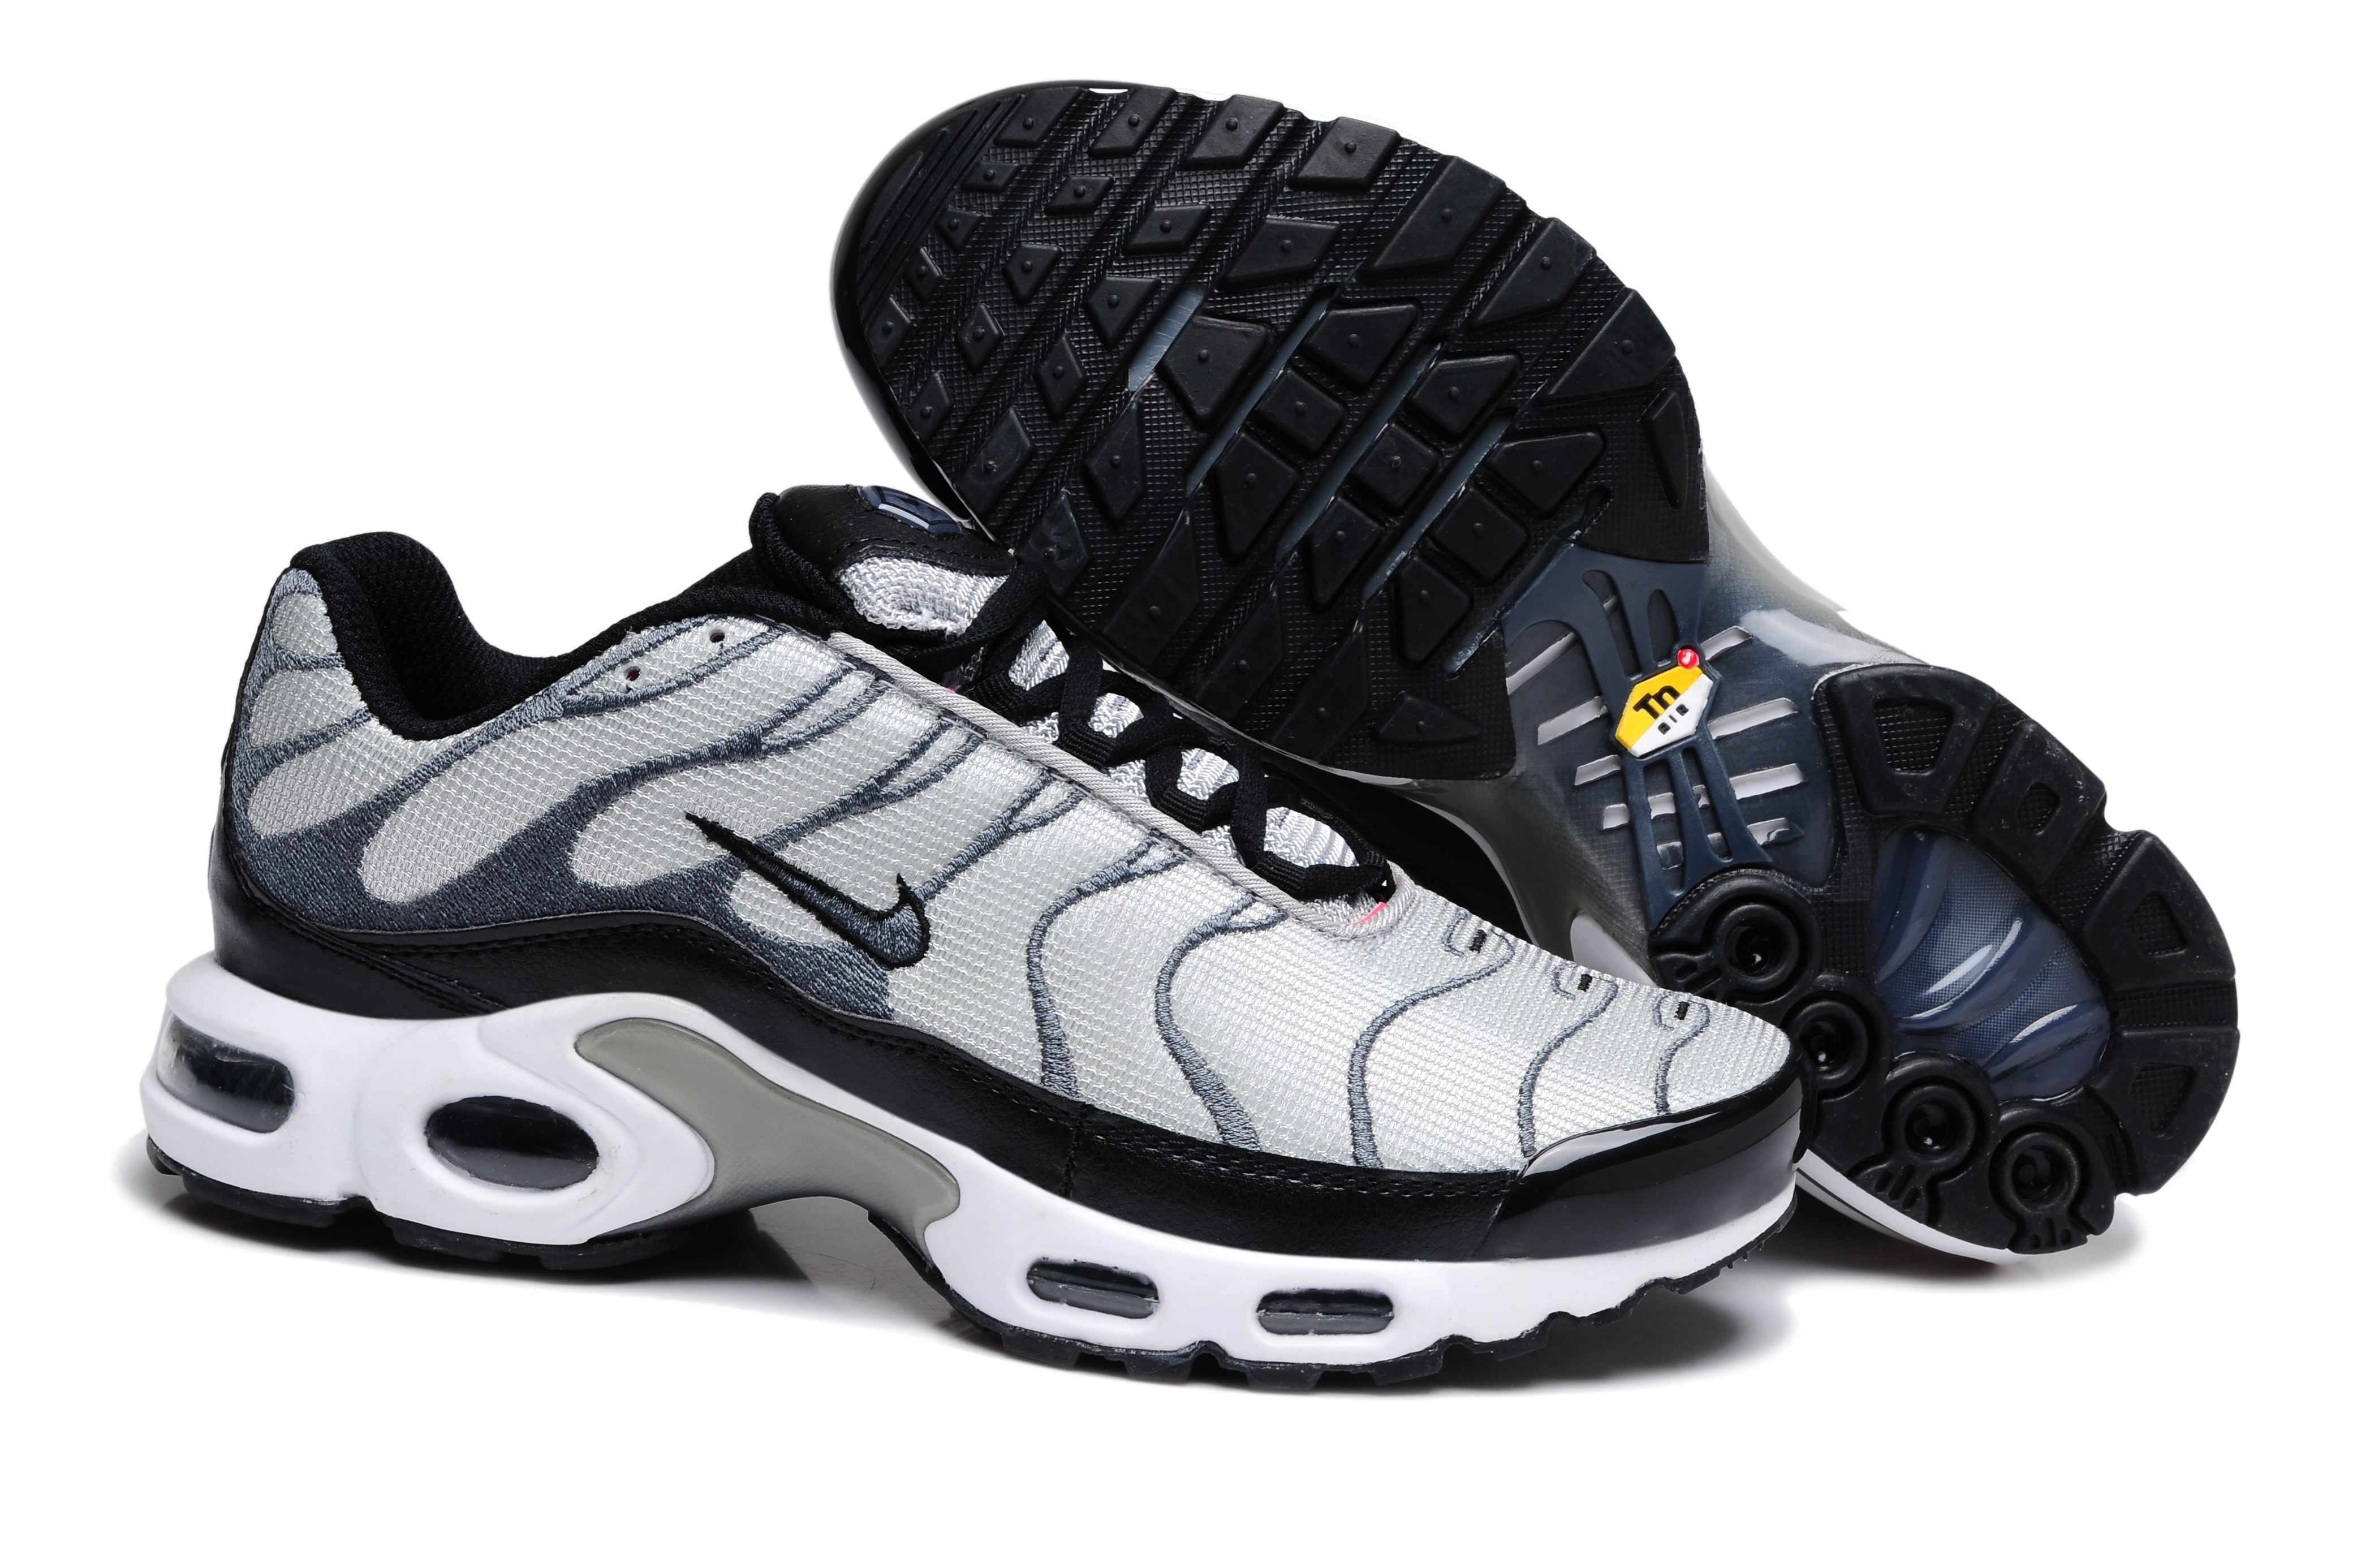 nike chaussure homme promo,mycarrierresources.com